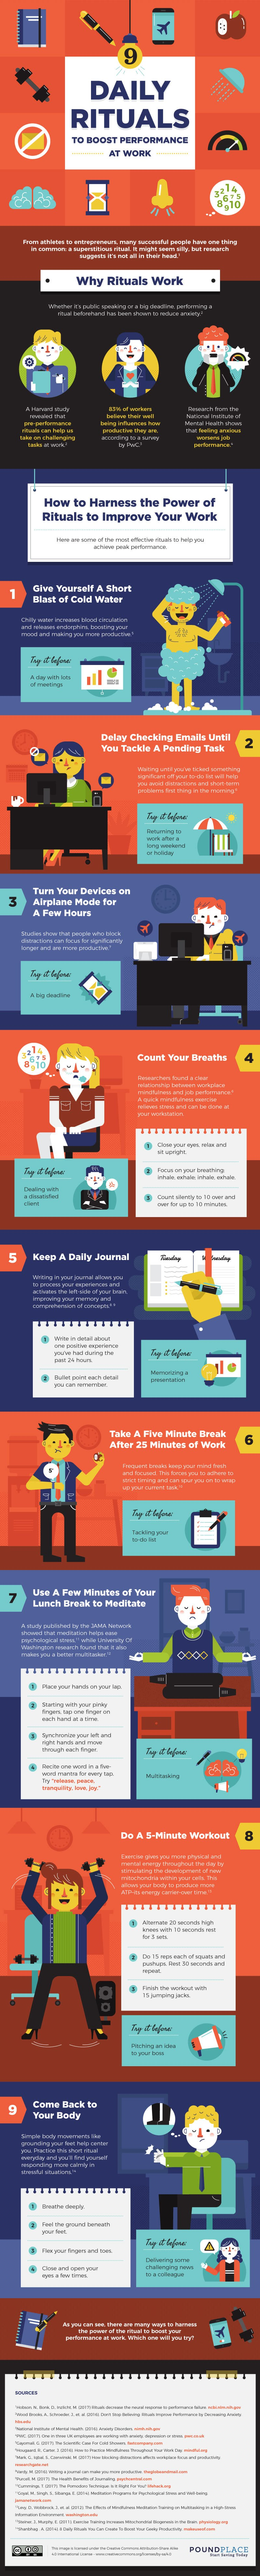 Improve Your Work Performance with These 9 Daily Rituals - #infographic